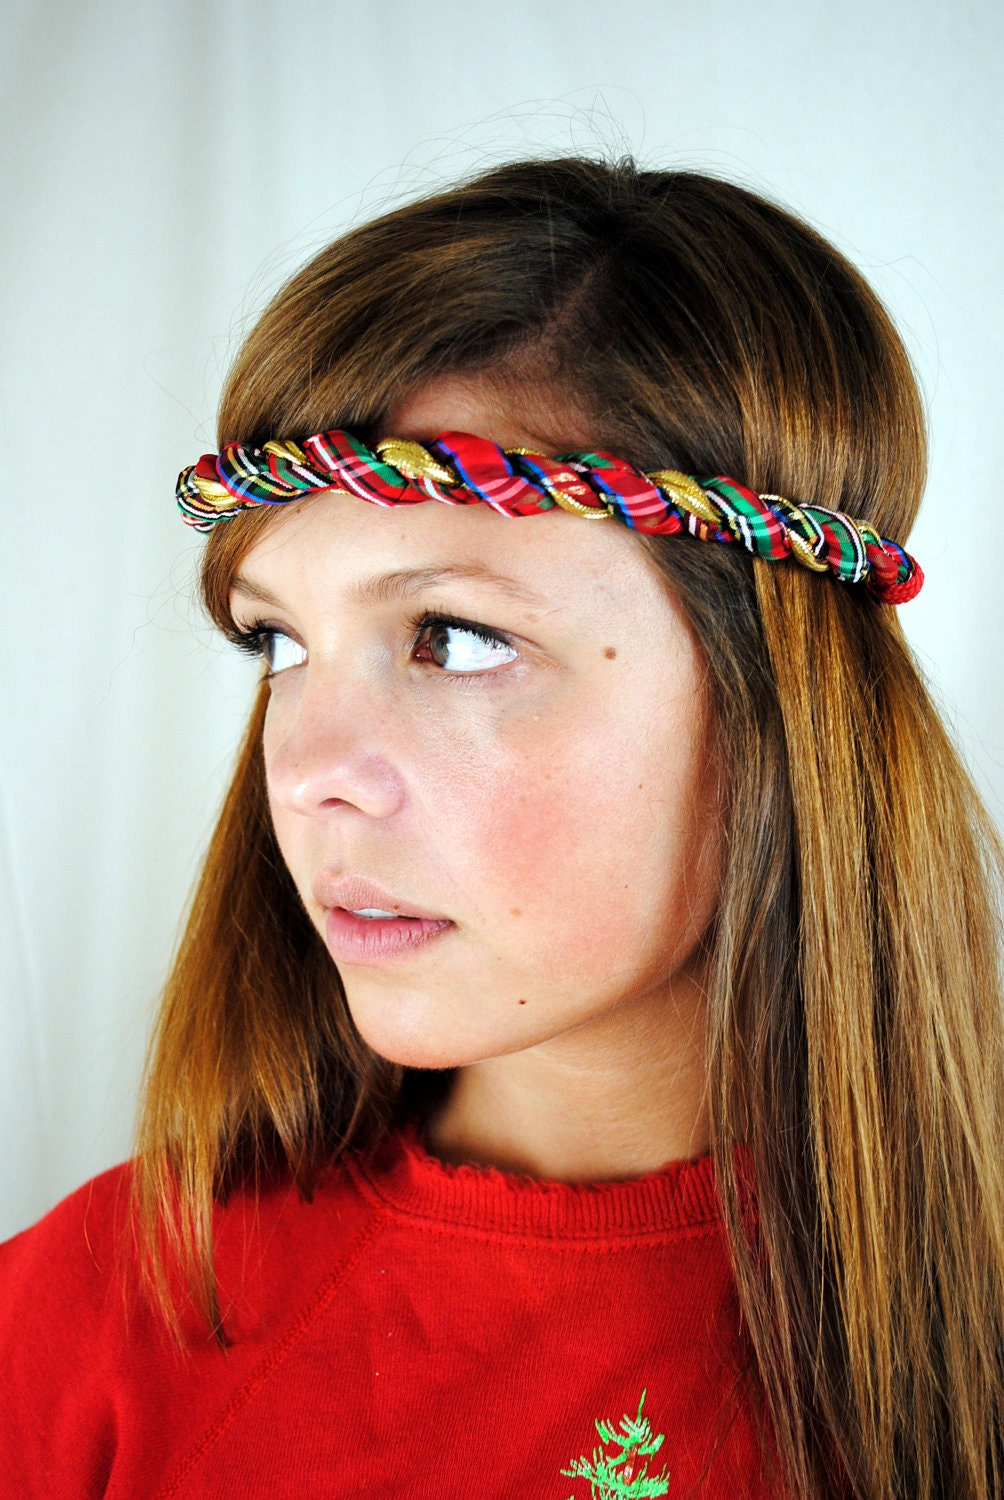 Outstanding Vintage Christmas 80S Workout Headband Hairstyle Inspiration Daily Dogsangcom